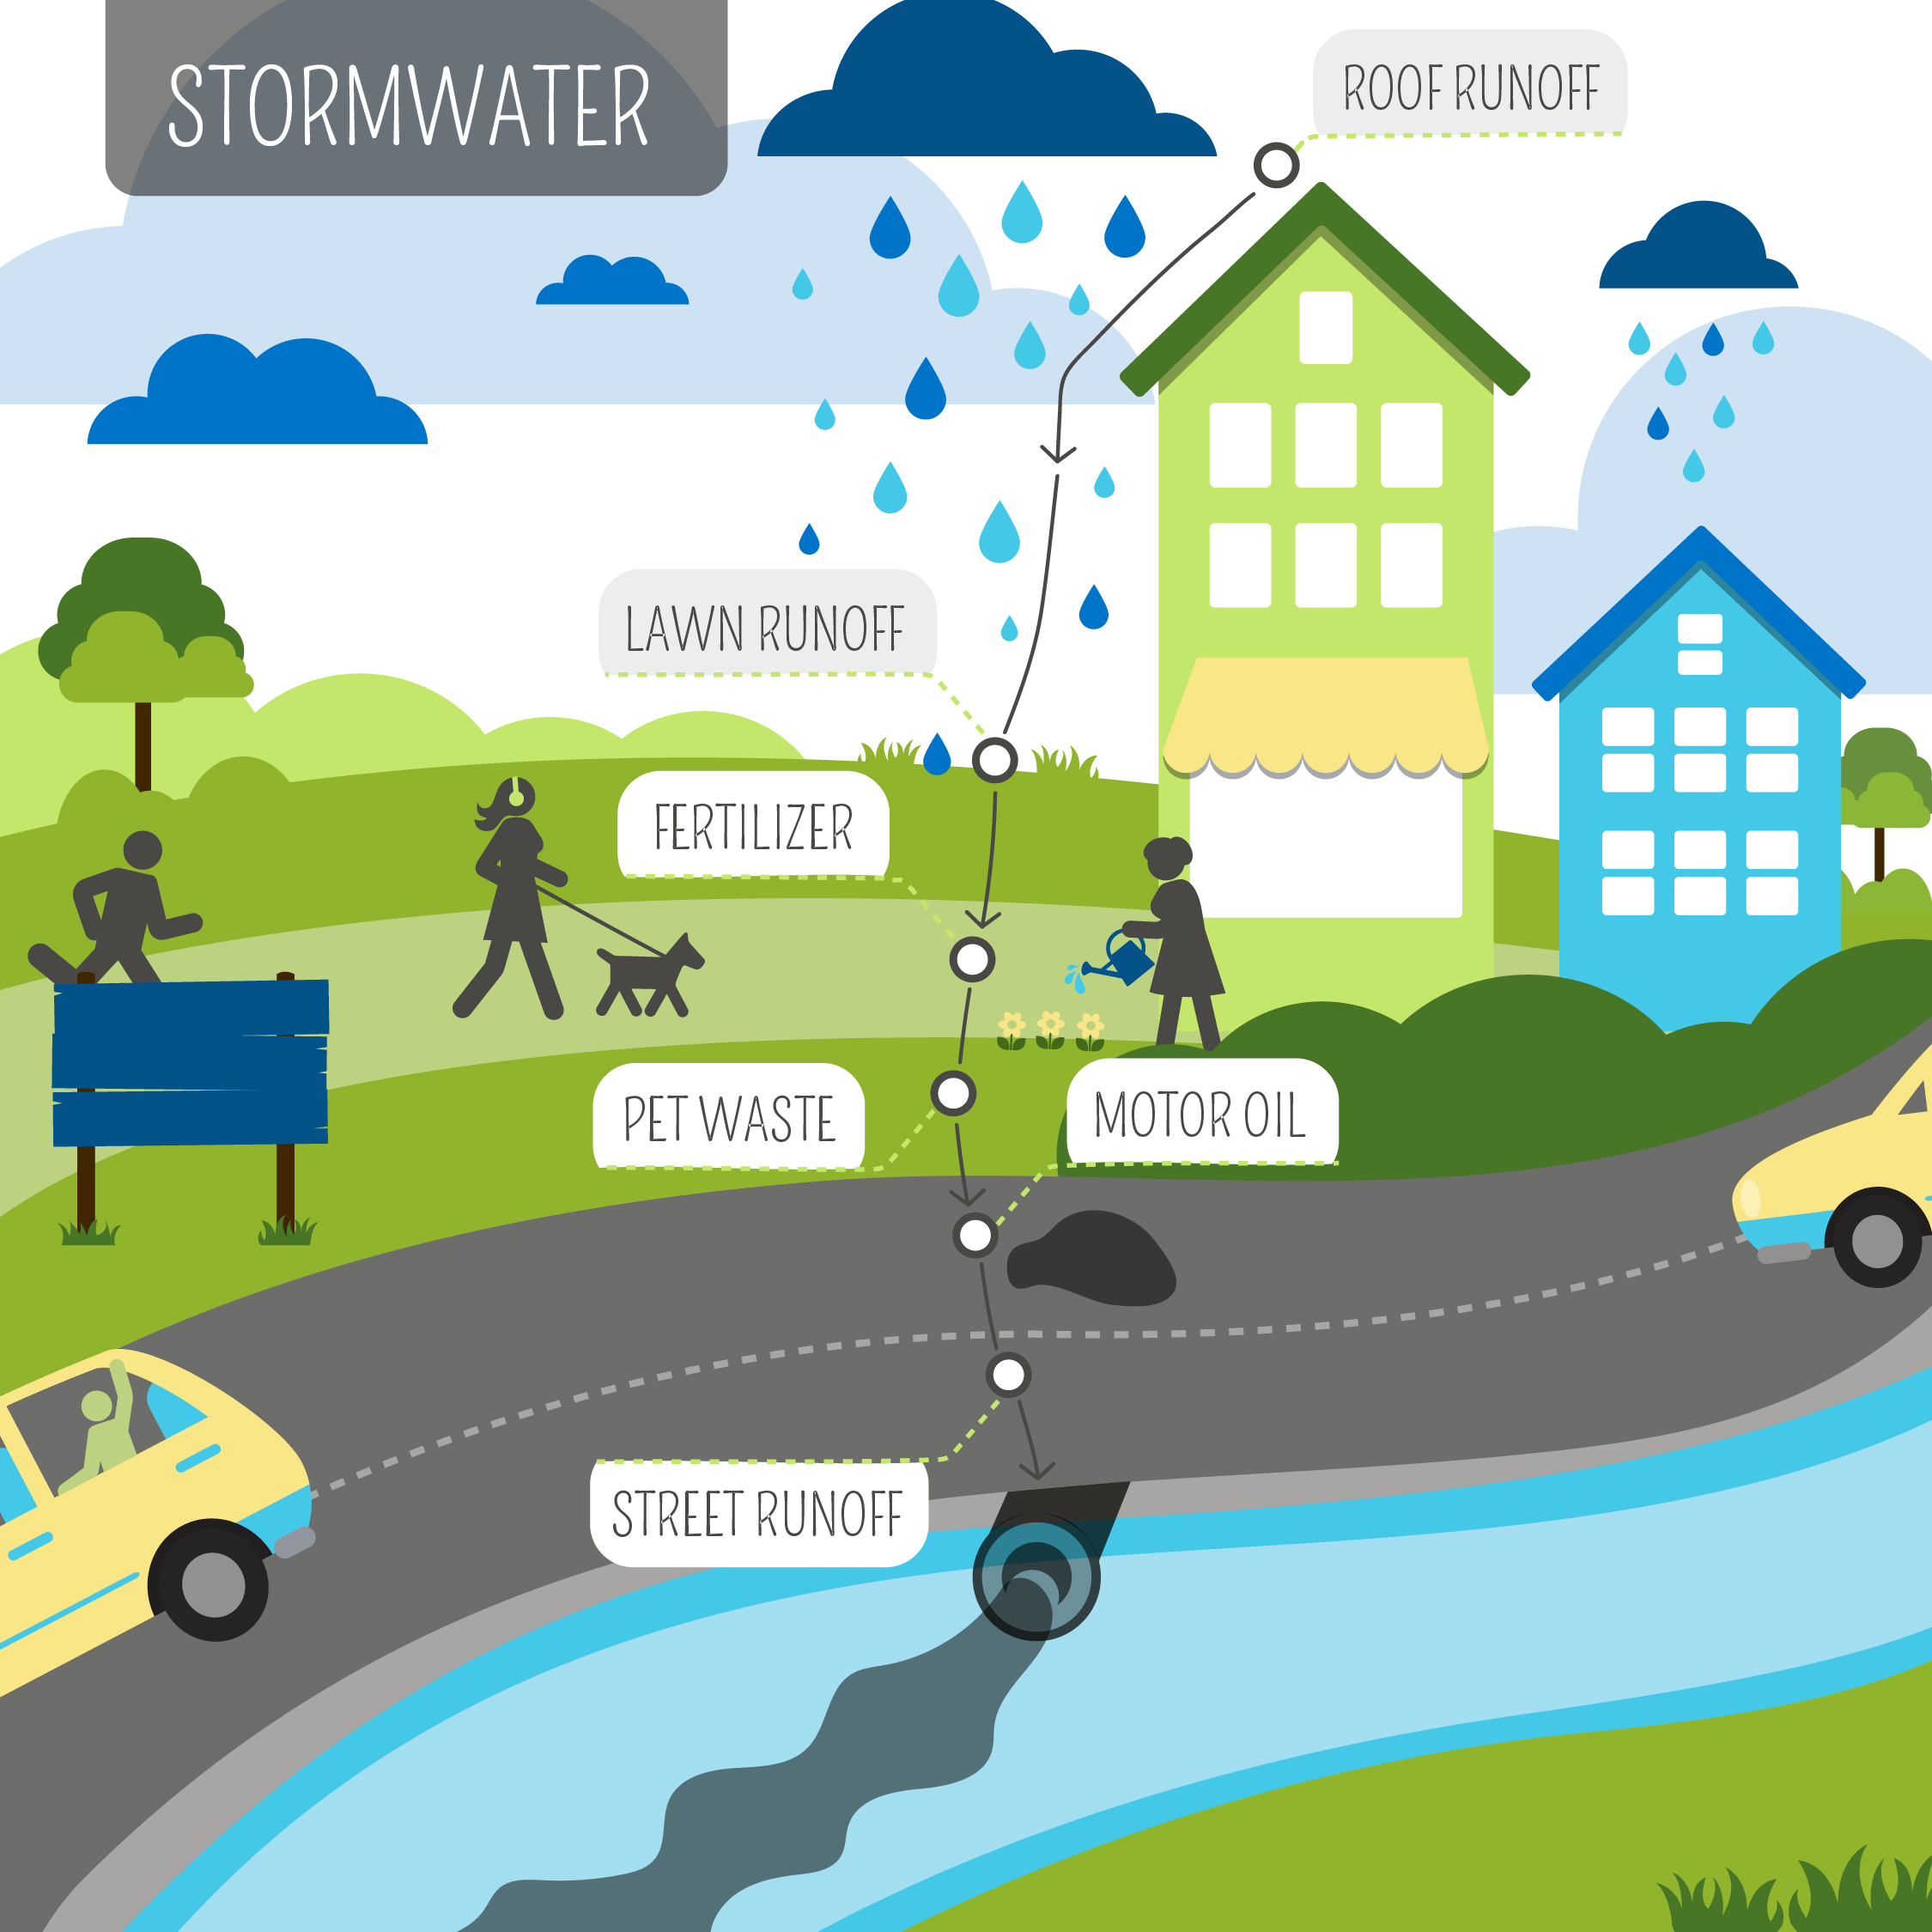 stormwater plan review guides private development in philadelphia. Stormwater Management What Is Stormwater Runoff Stormwater Runoff Is Rainfall That Flows Over The Ground Surface